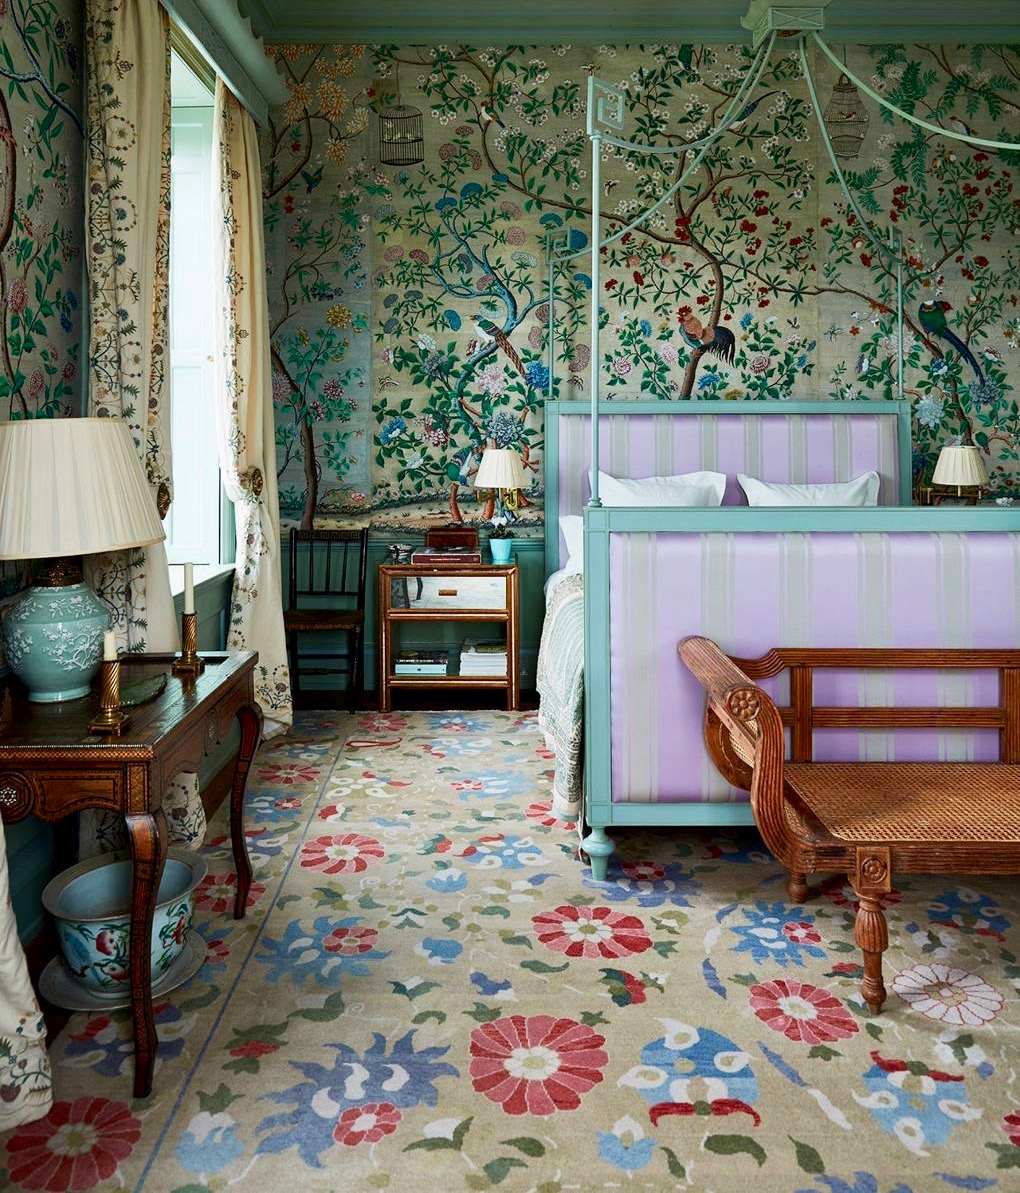 How To Decorate Girly Bedroom: How To Decorate Your Home In The English Country House